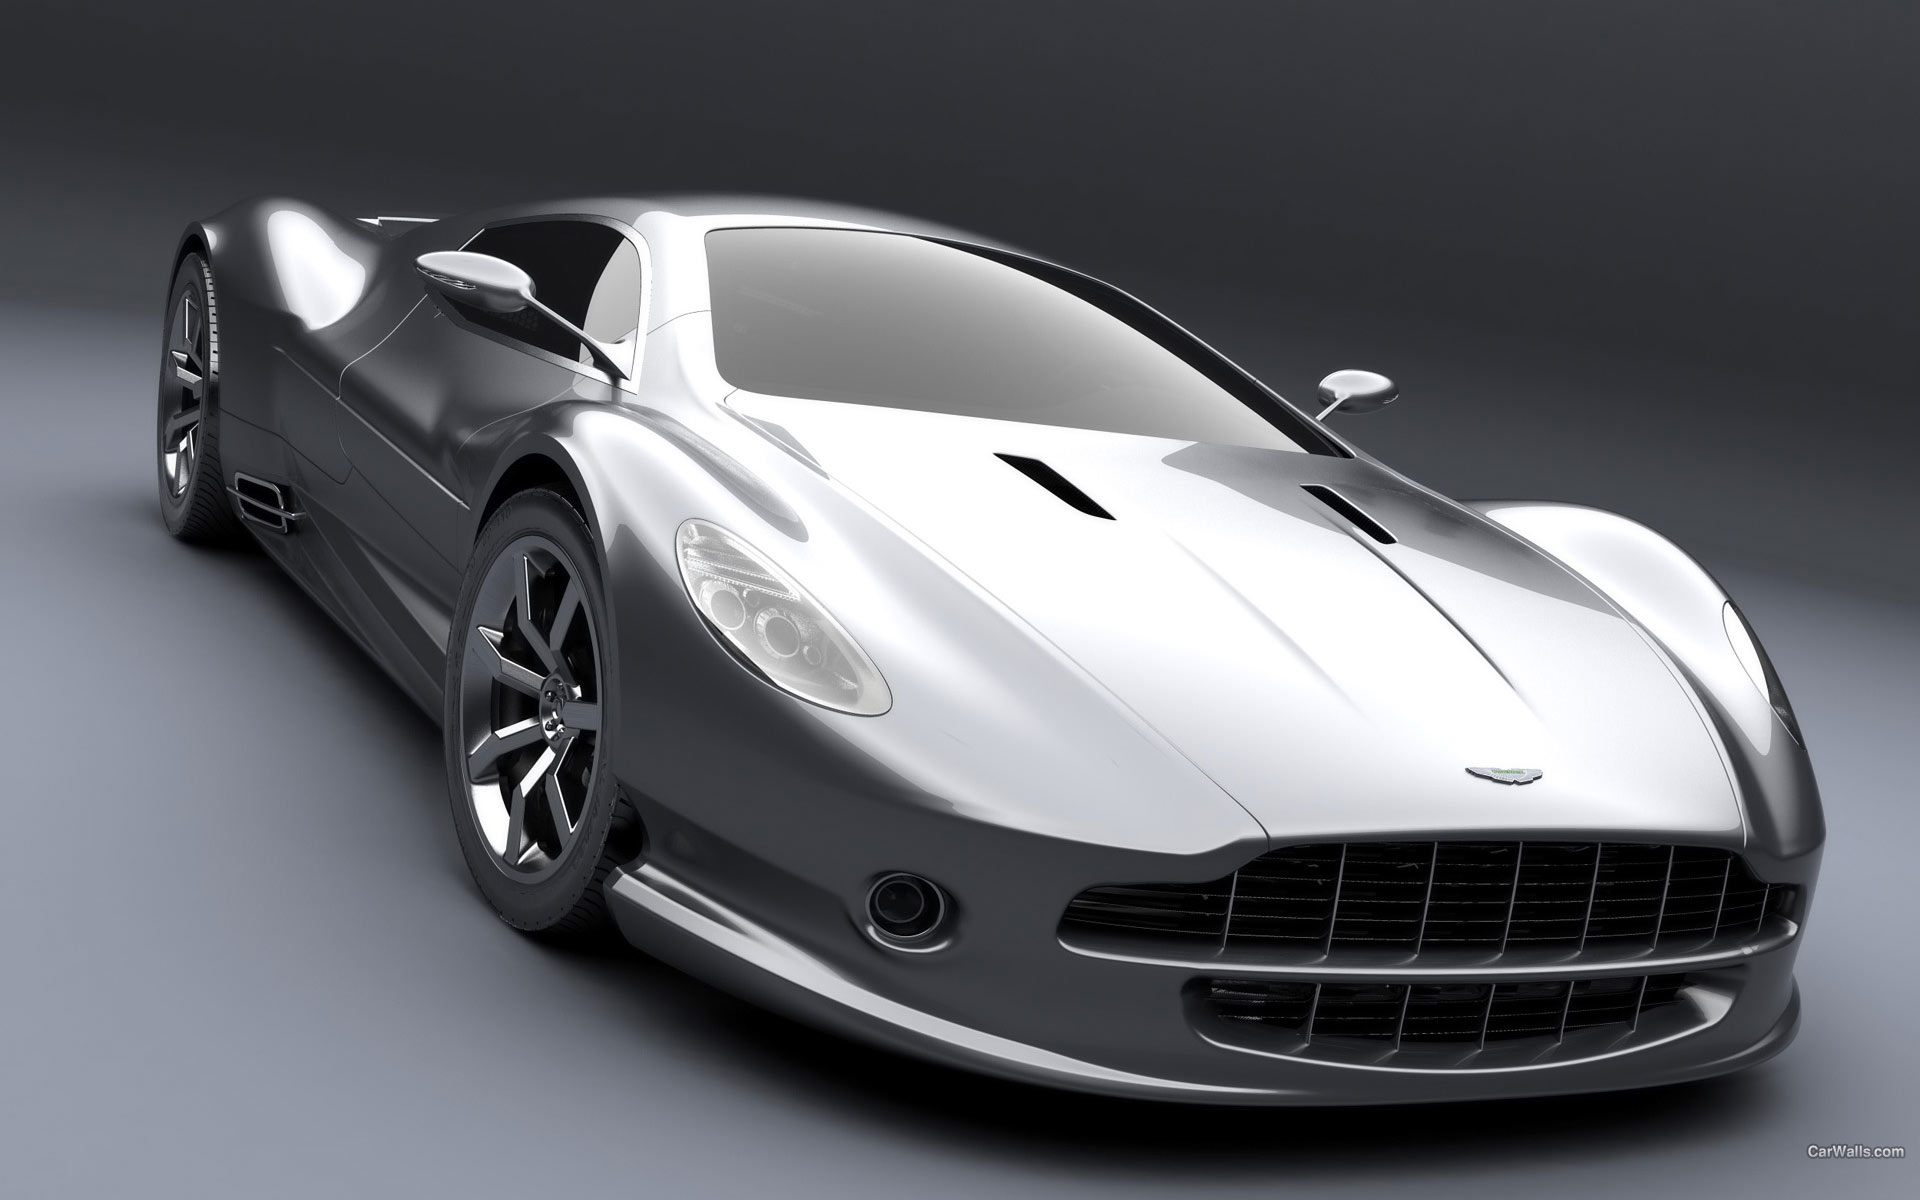 Aston Martin Concept Car The Easypc Company